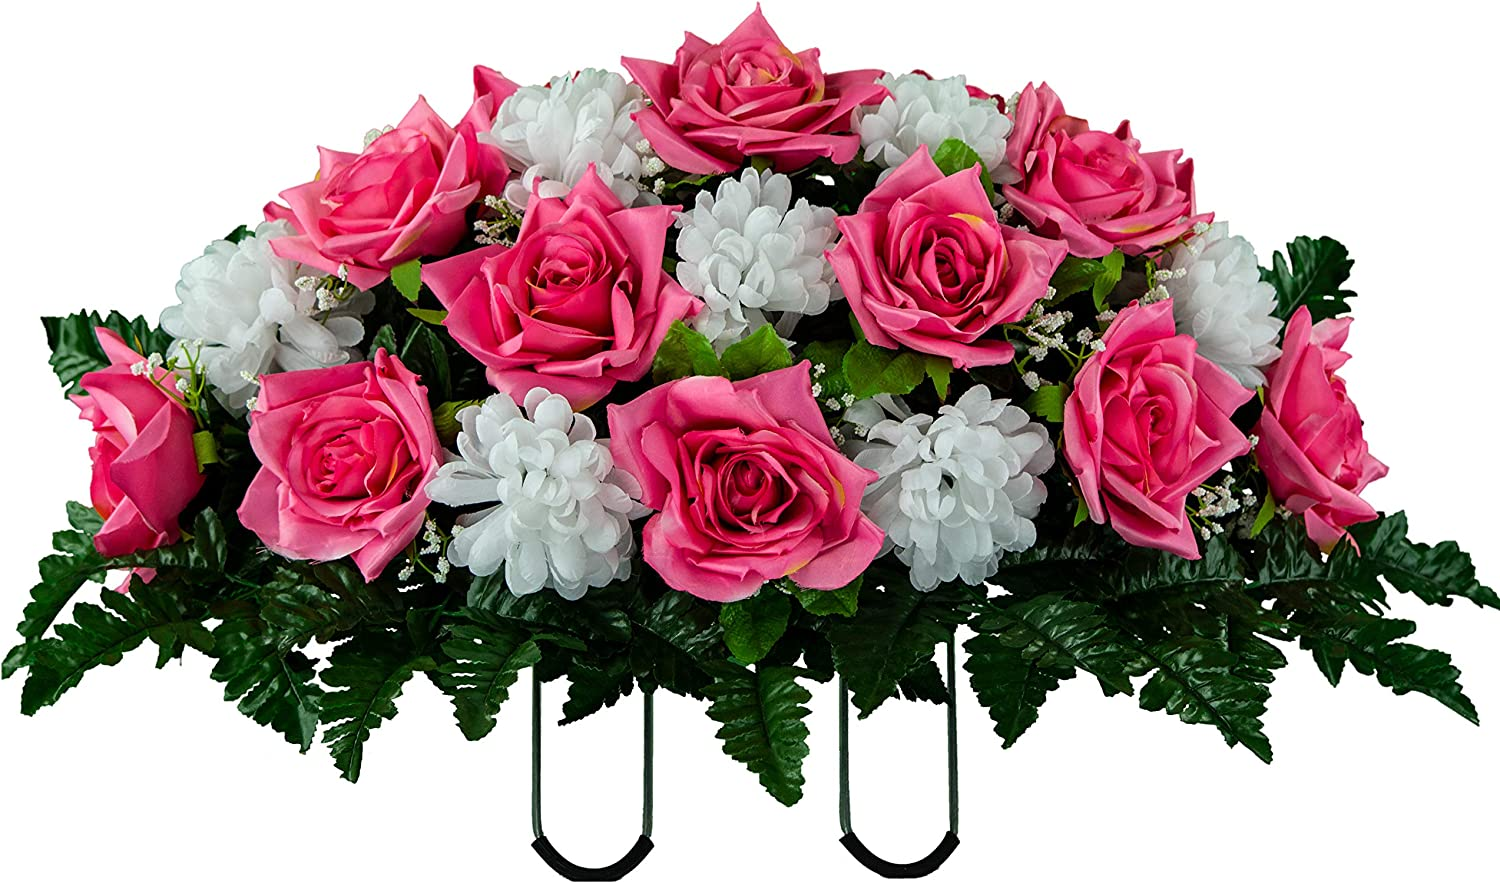 Amazon Com Artificial Cemetery Flowers Saddle Arrangement Pink Rose White Mums Silk Fake Flowers For Outdoor Grave Decorations Non Bleed Colors Easy Fit Kitchen Dining